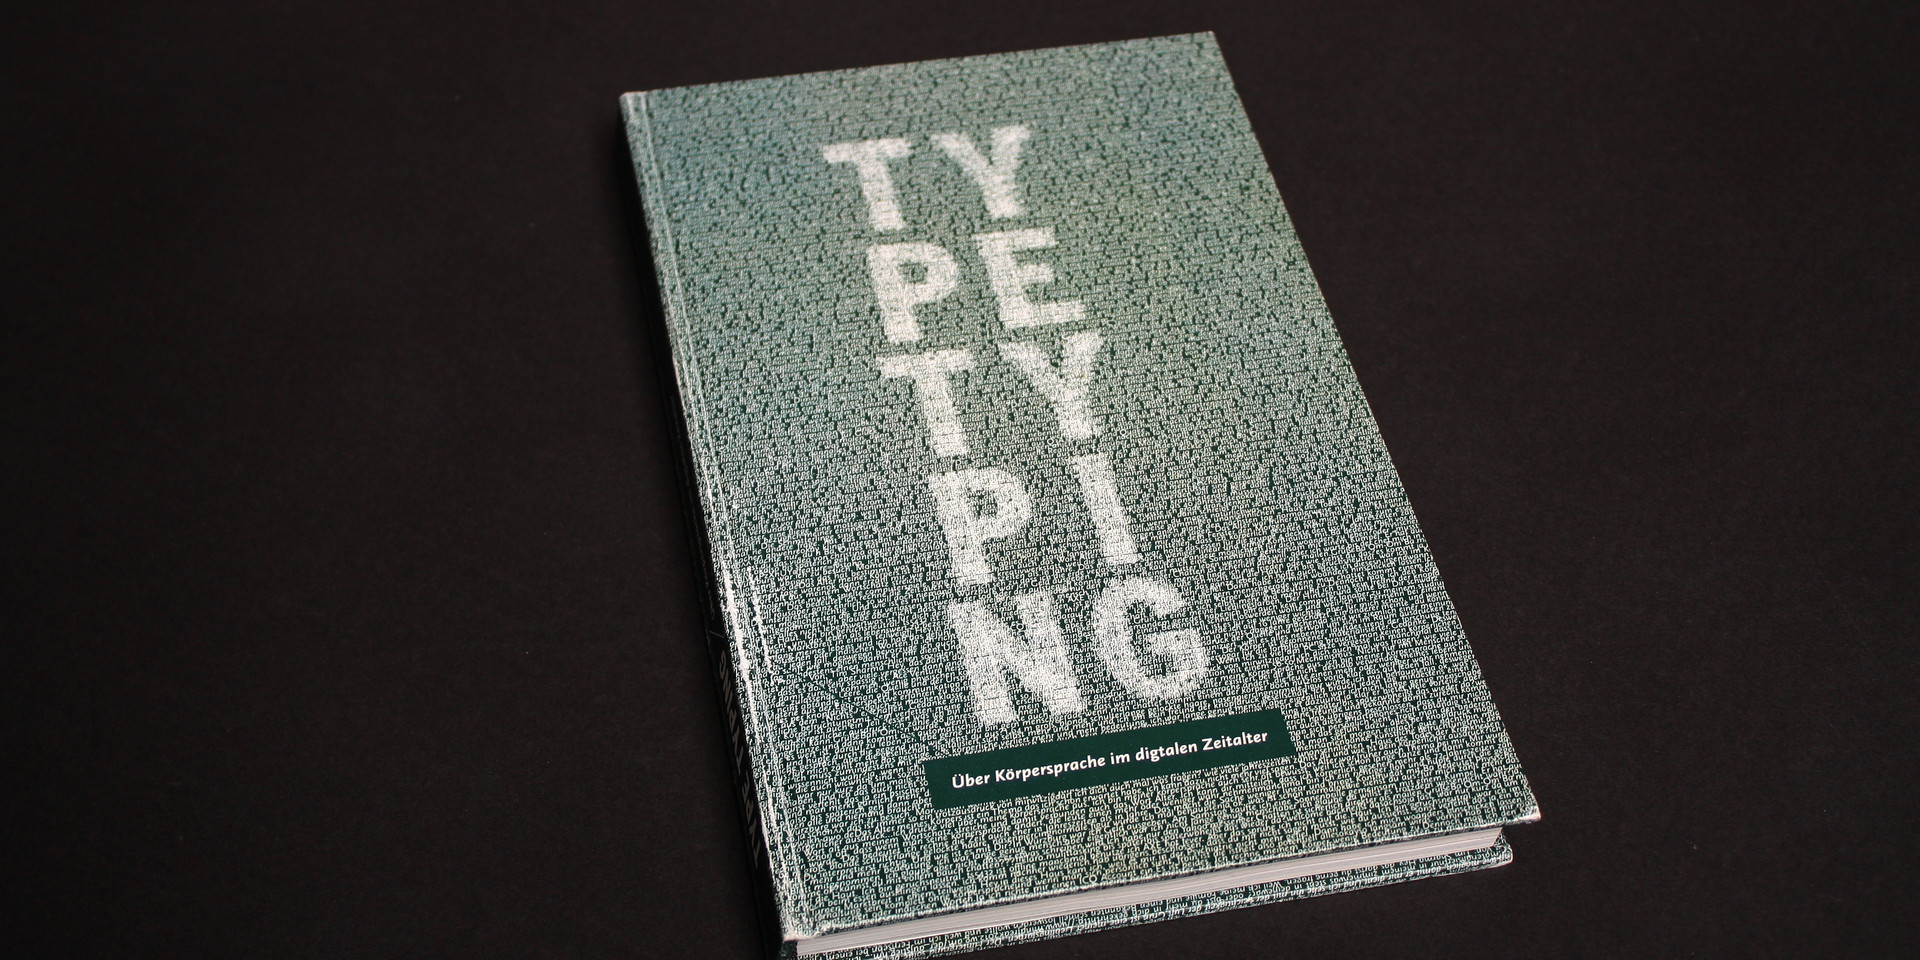 Type Typing – About body language in digital age